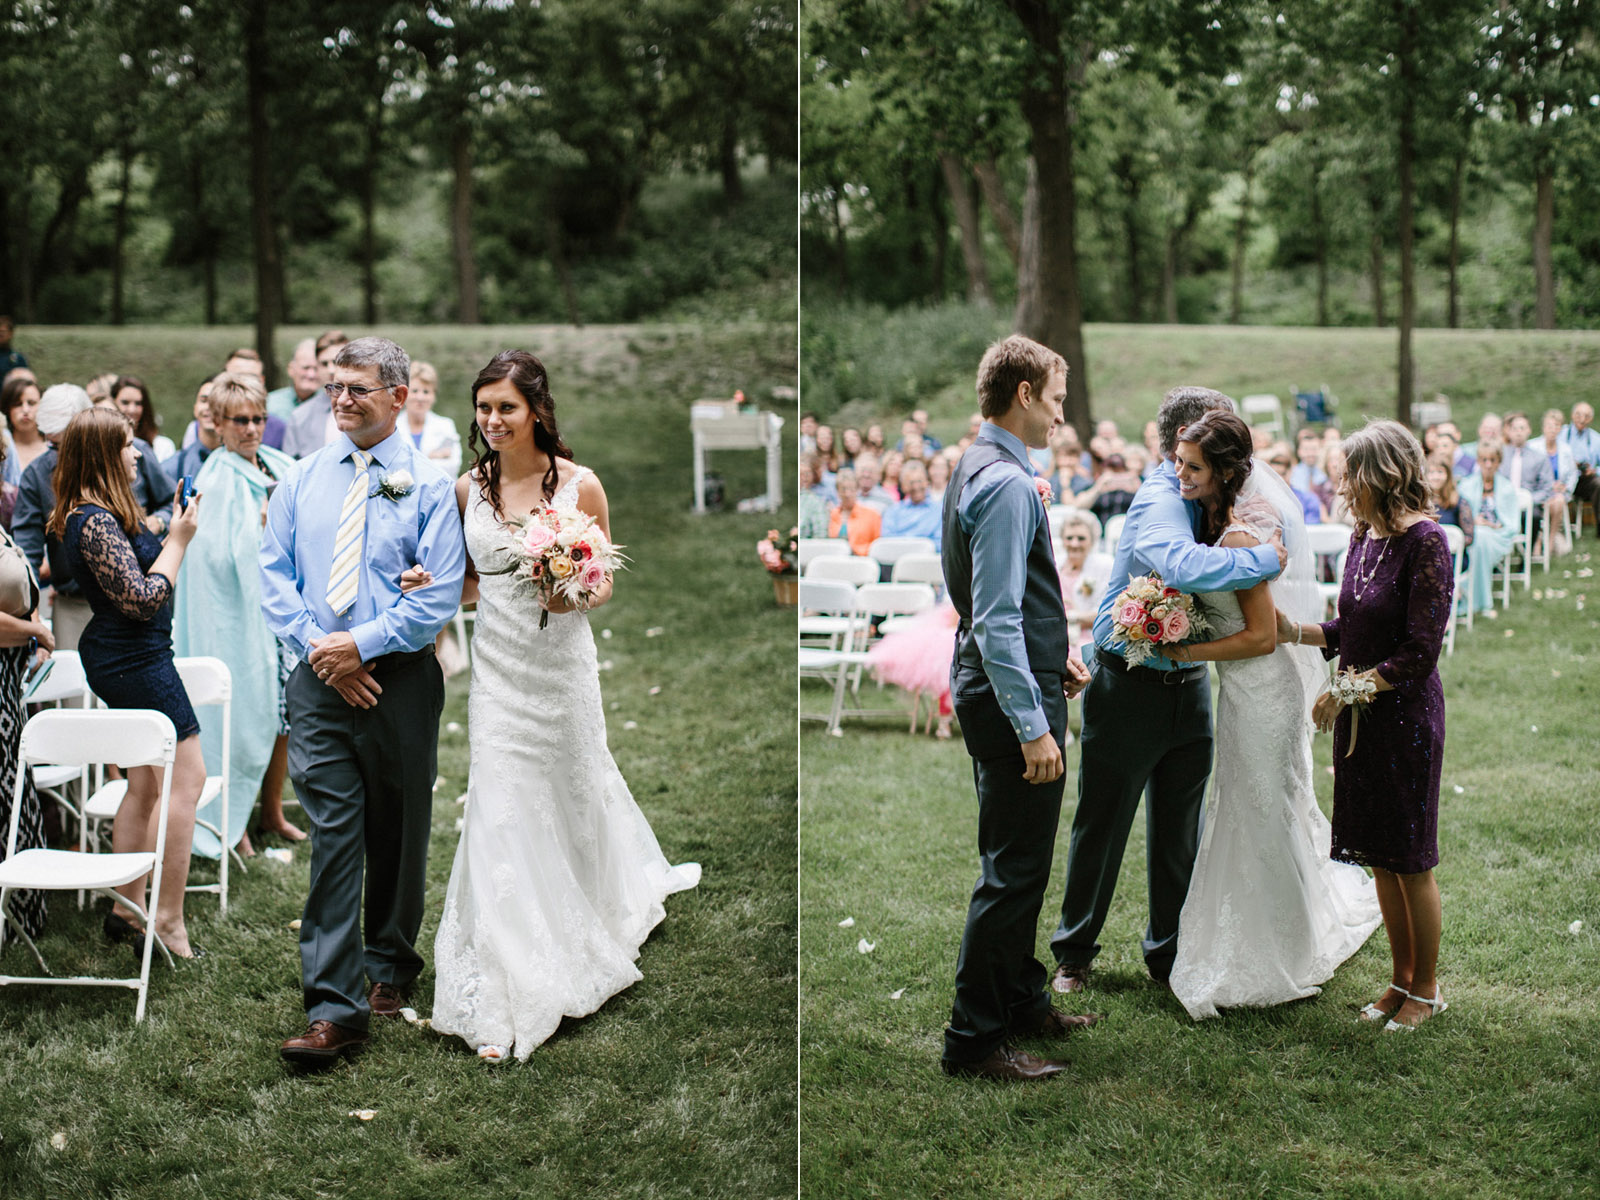 Outdoor_Wedding_SiouxFalls_MaryJoWegnerArboretum_Photographer_Calli&Jon_078.jpg